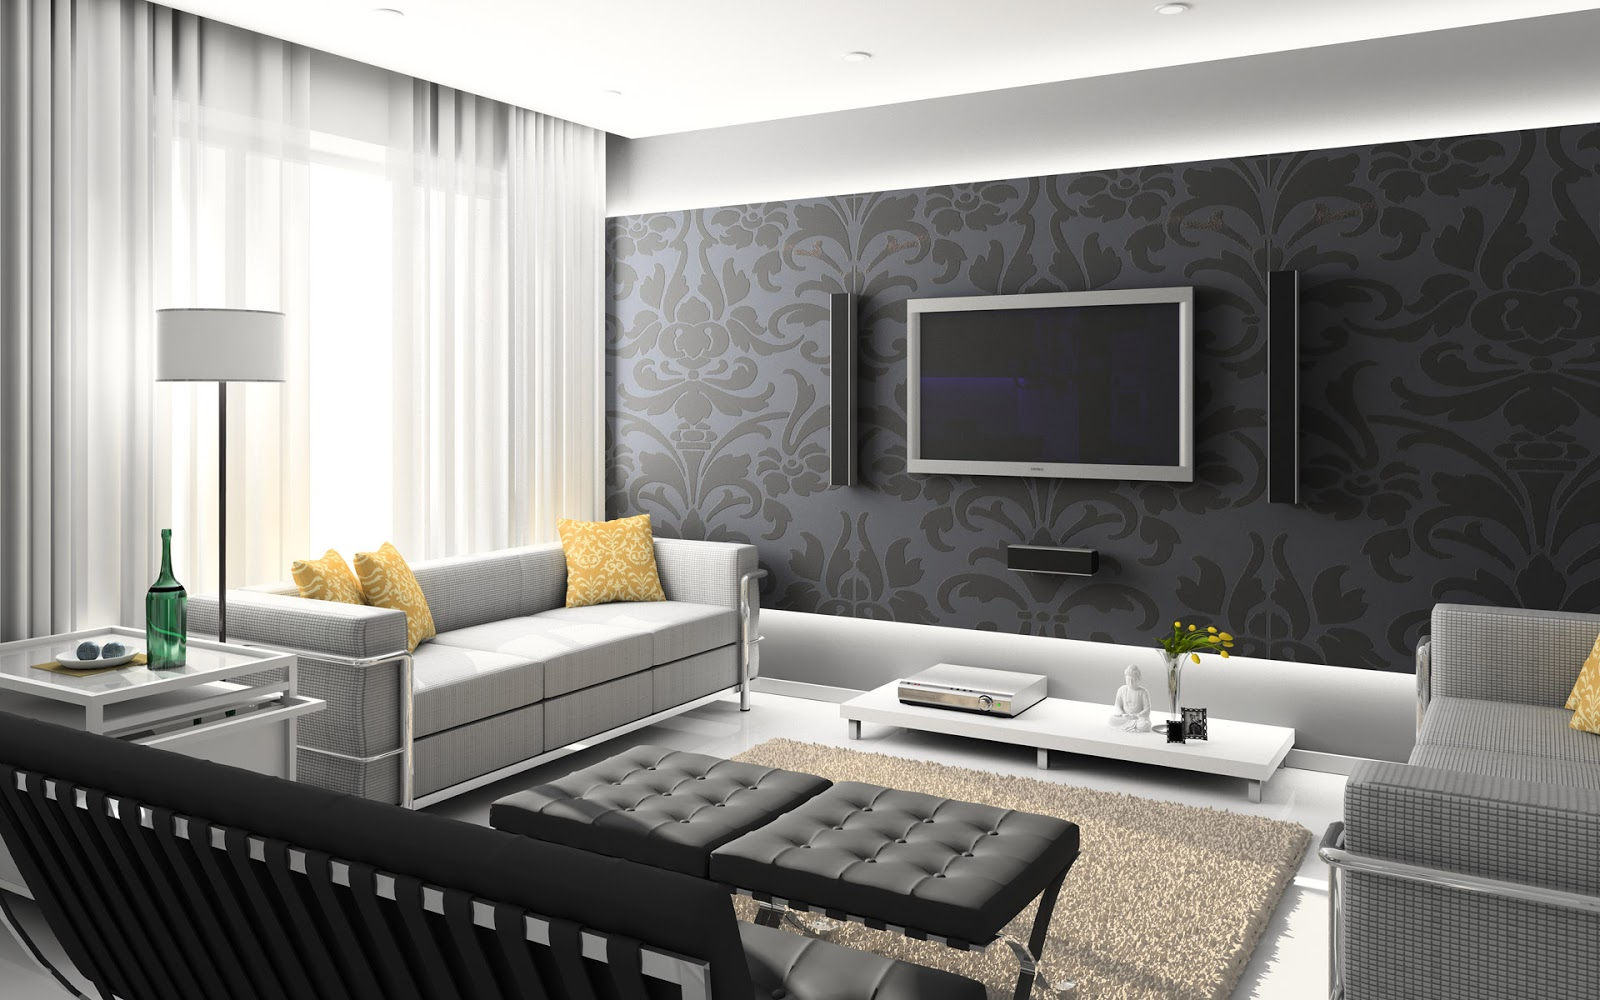 Design Home Wallpaper